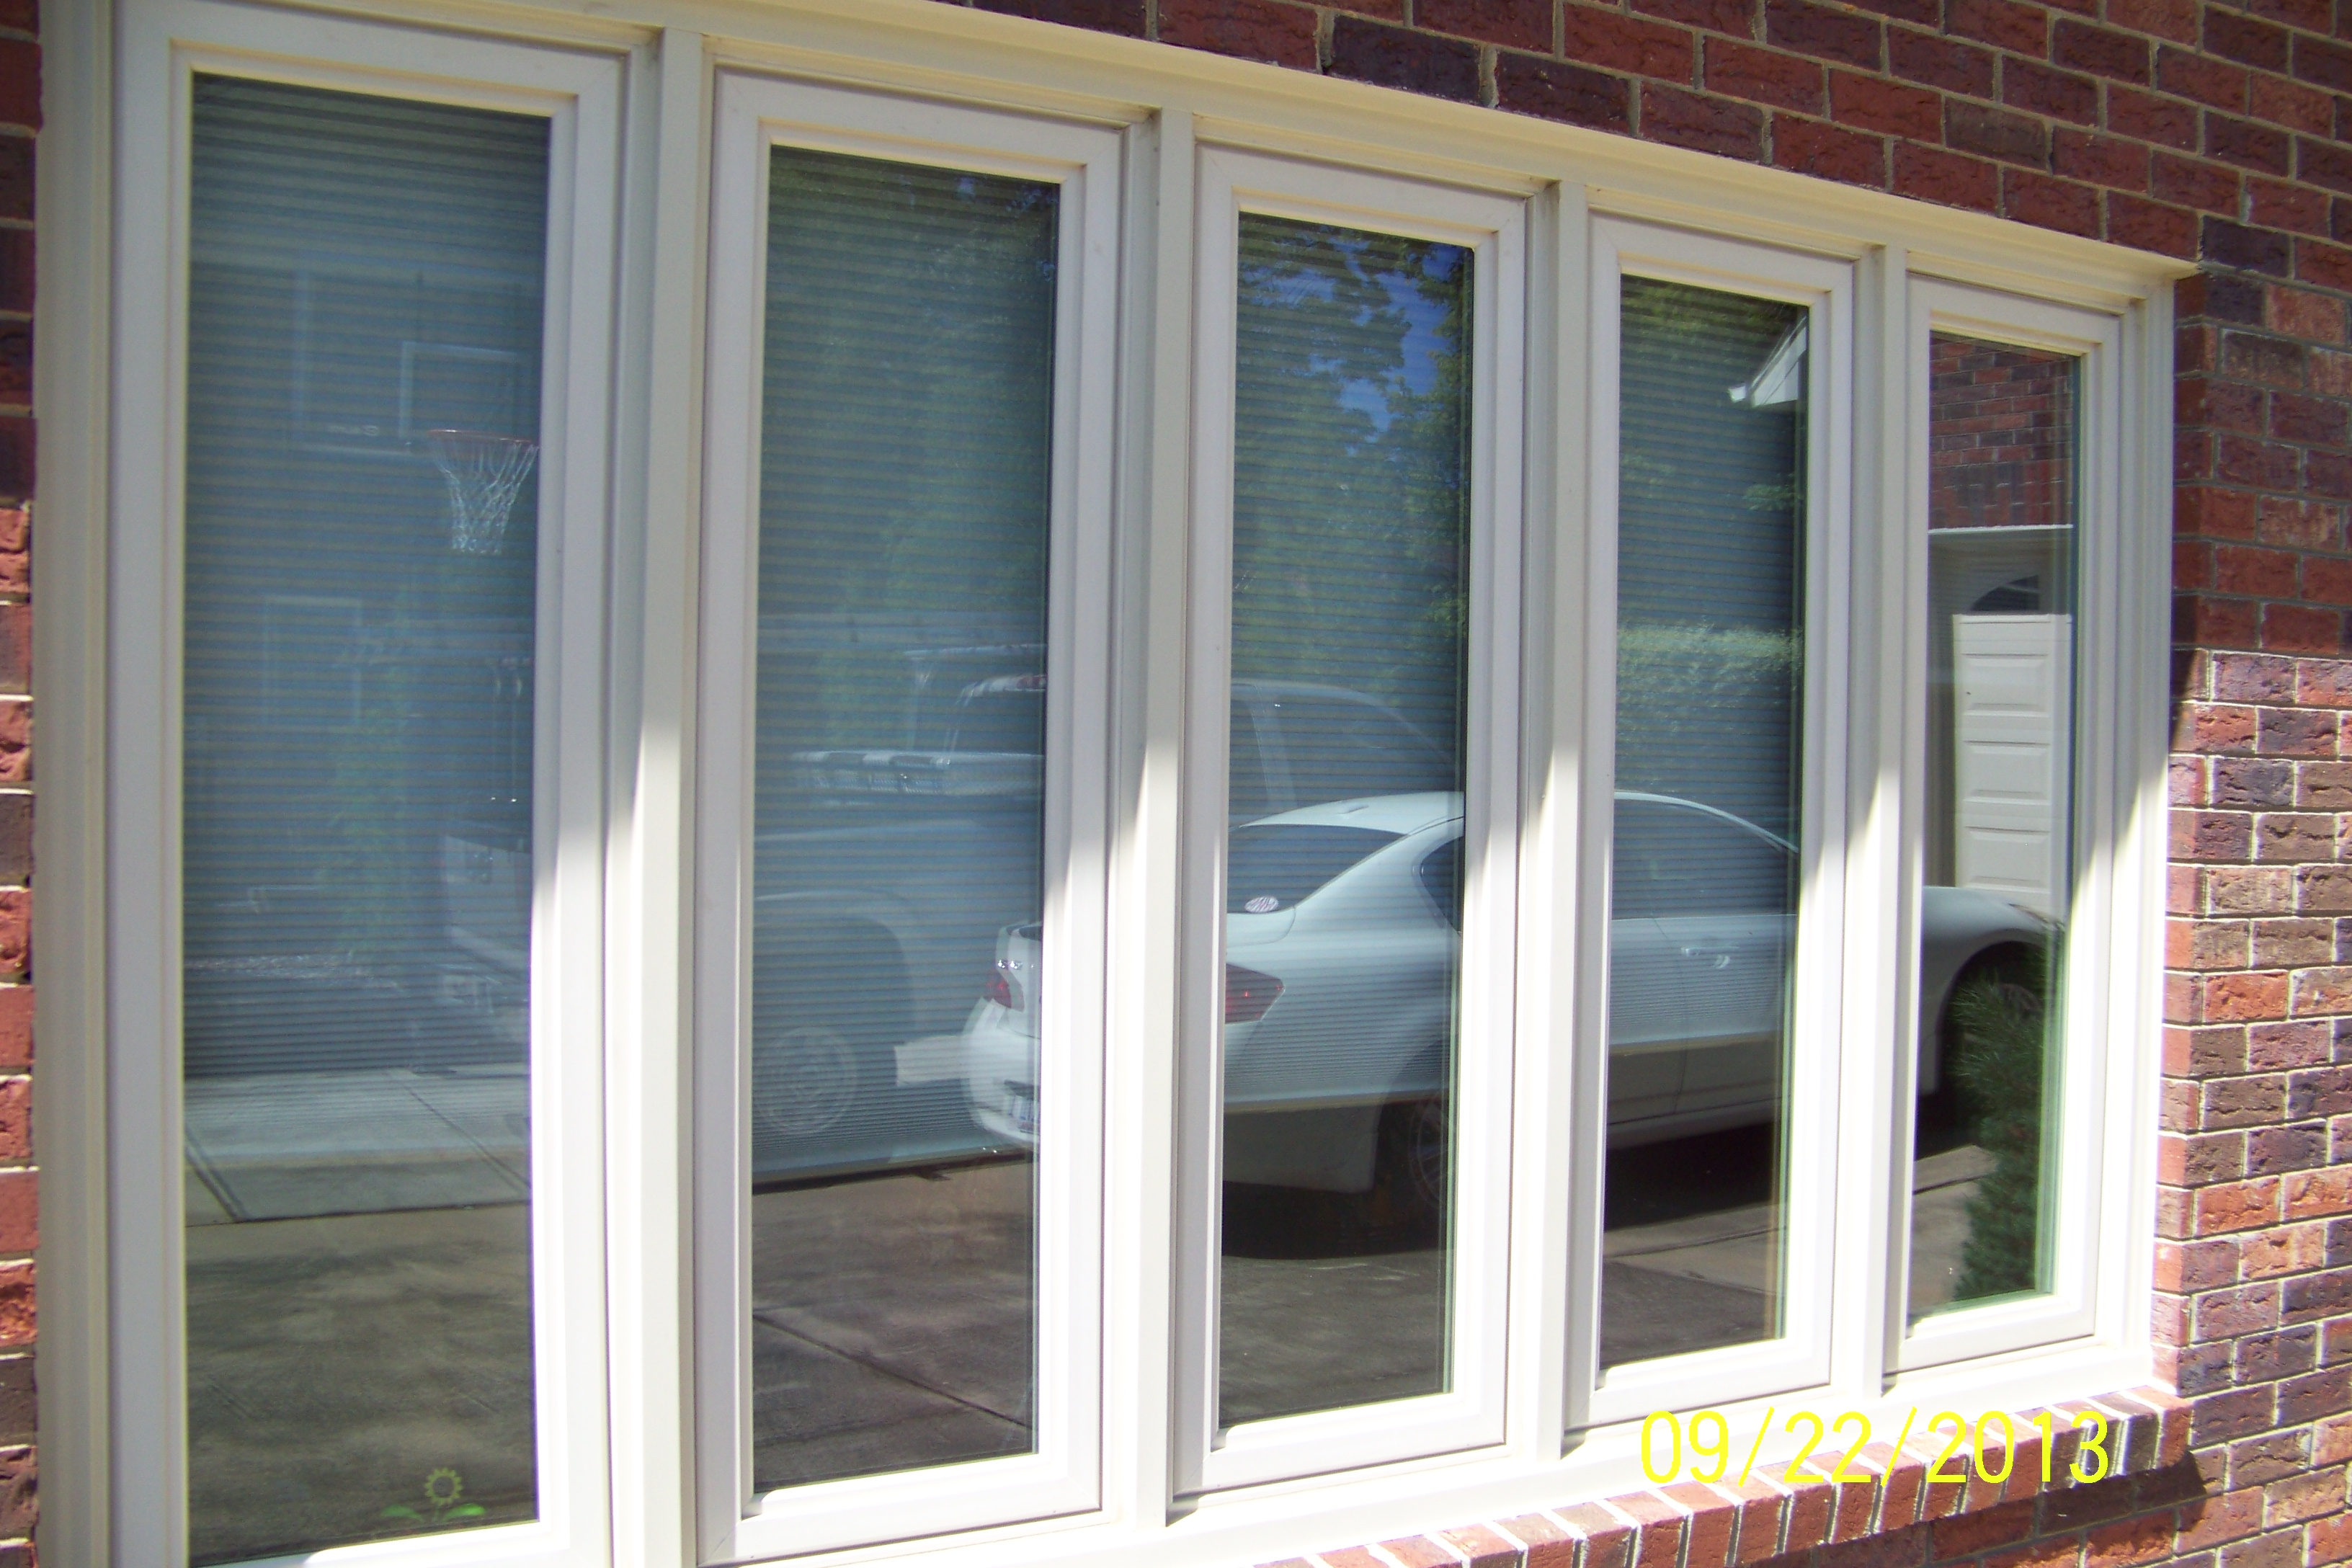 window replacement charlotte nc check out these nice windows window replacement charlotte nc windows freemans